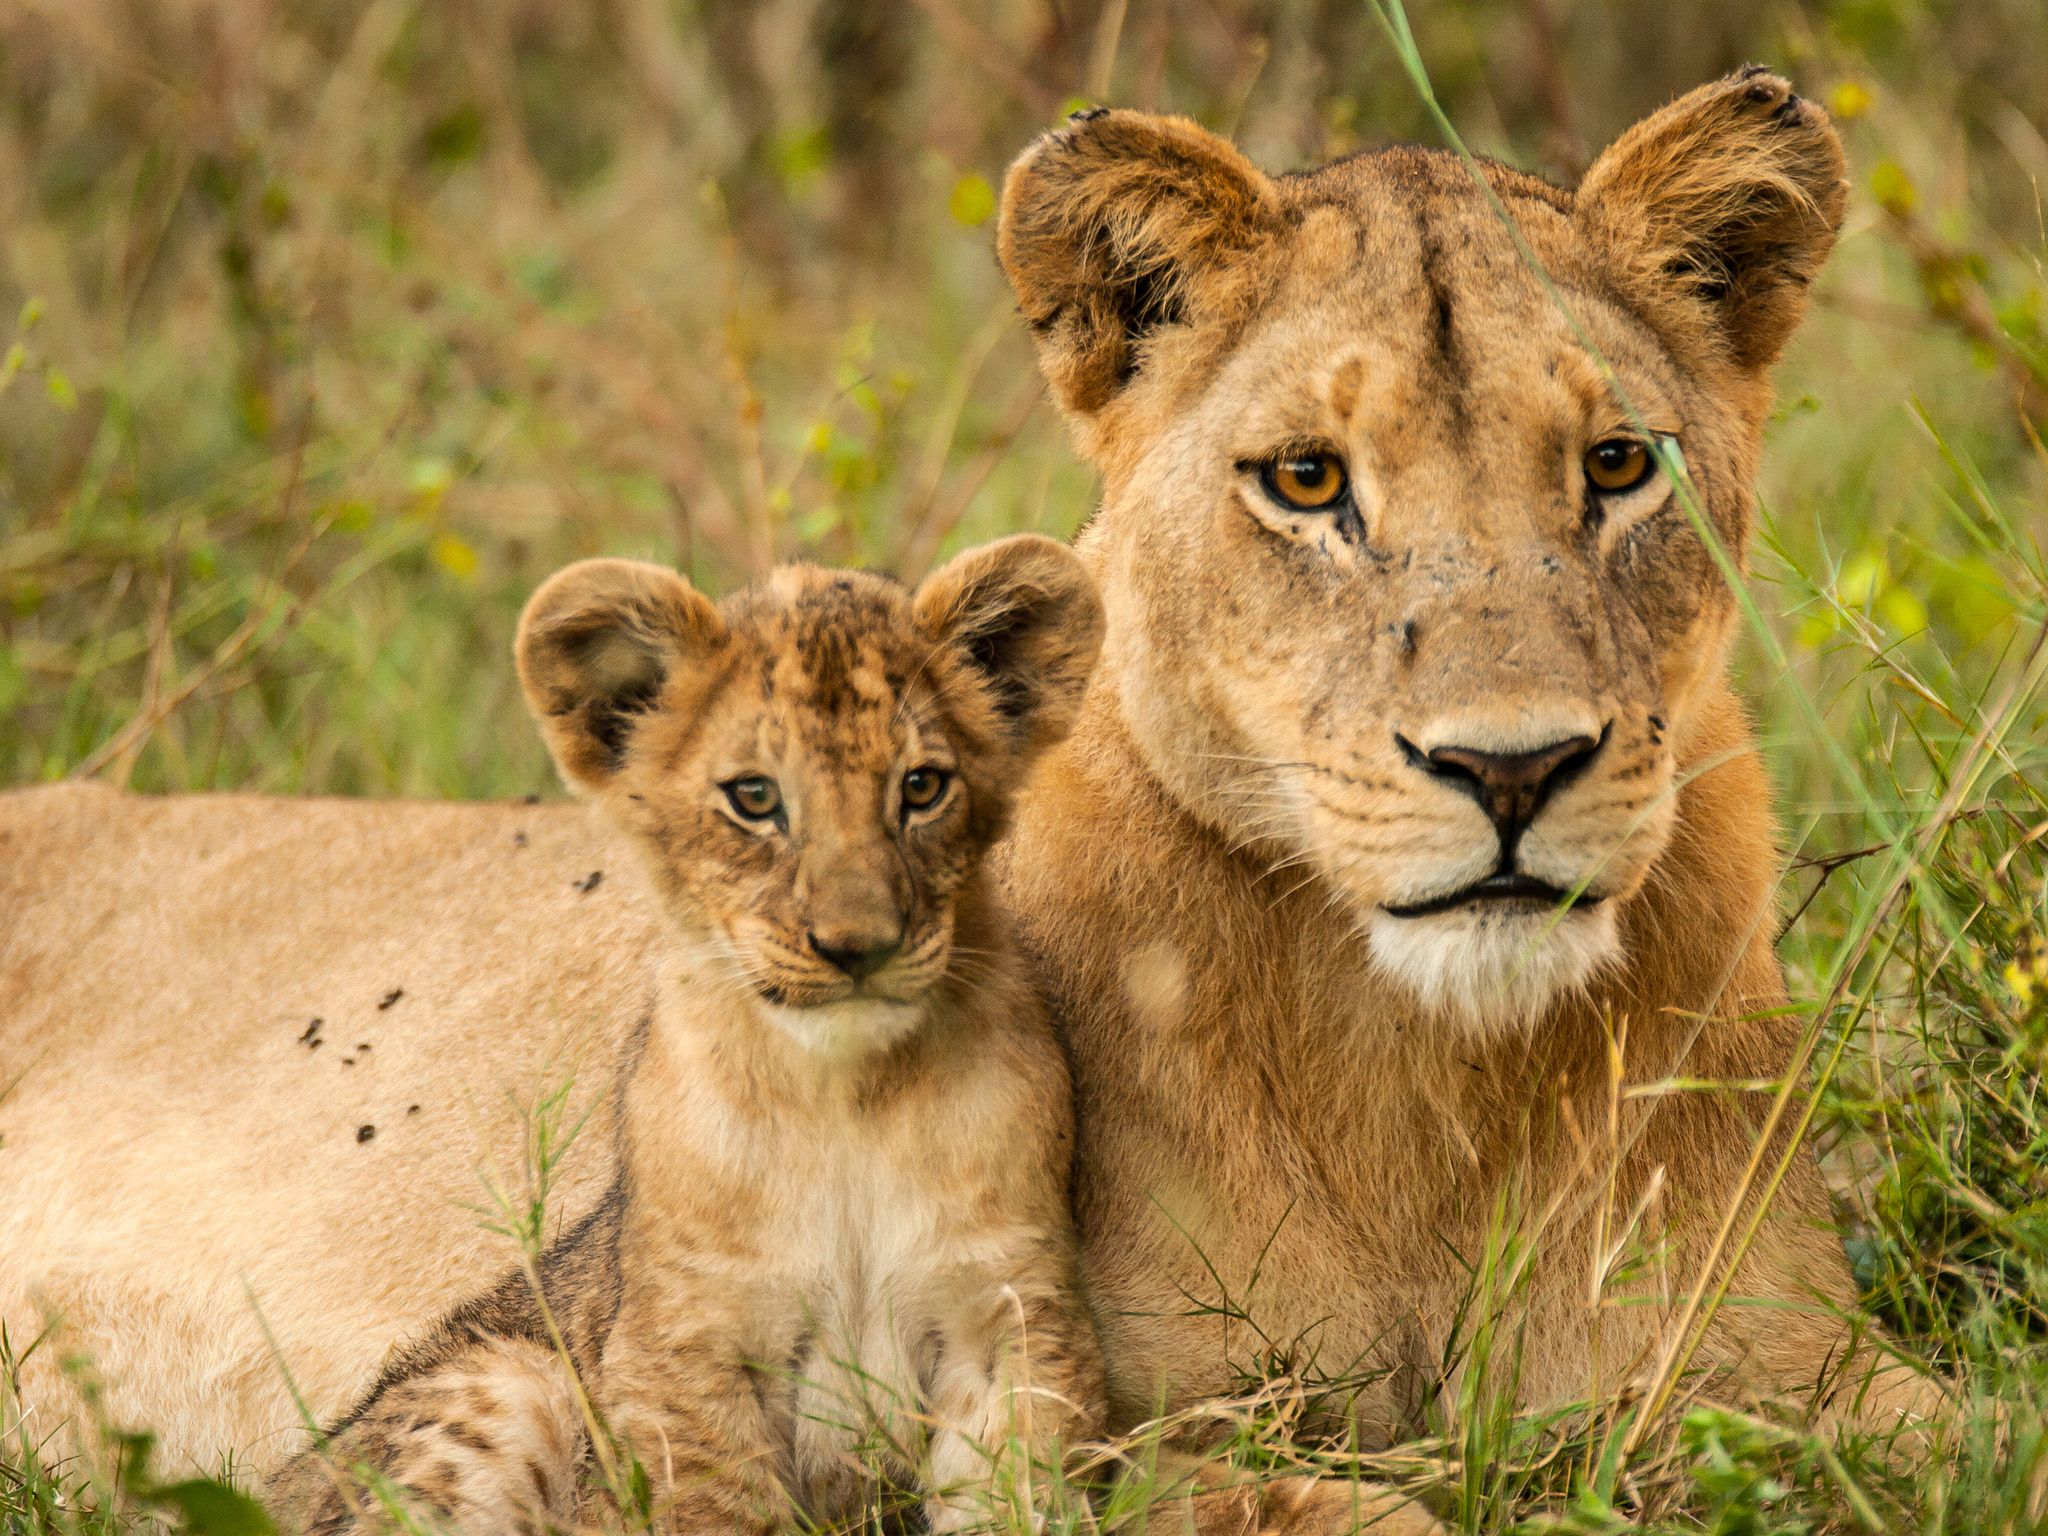 Lioness resting with cub. Cubs remain with their mother for 21 – 24 months. This image is... [Photo of the day - May 2015]